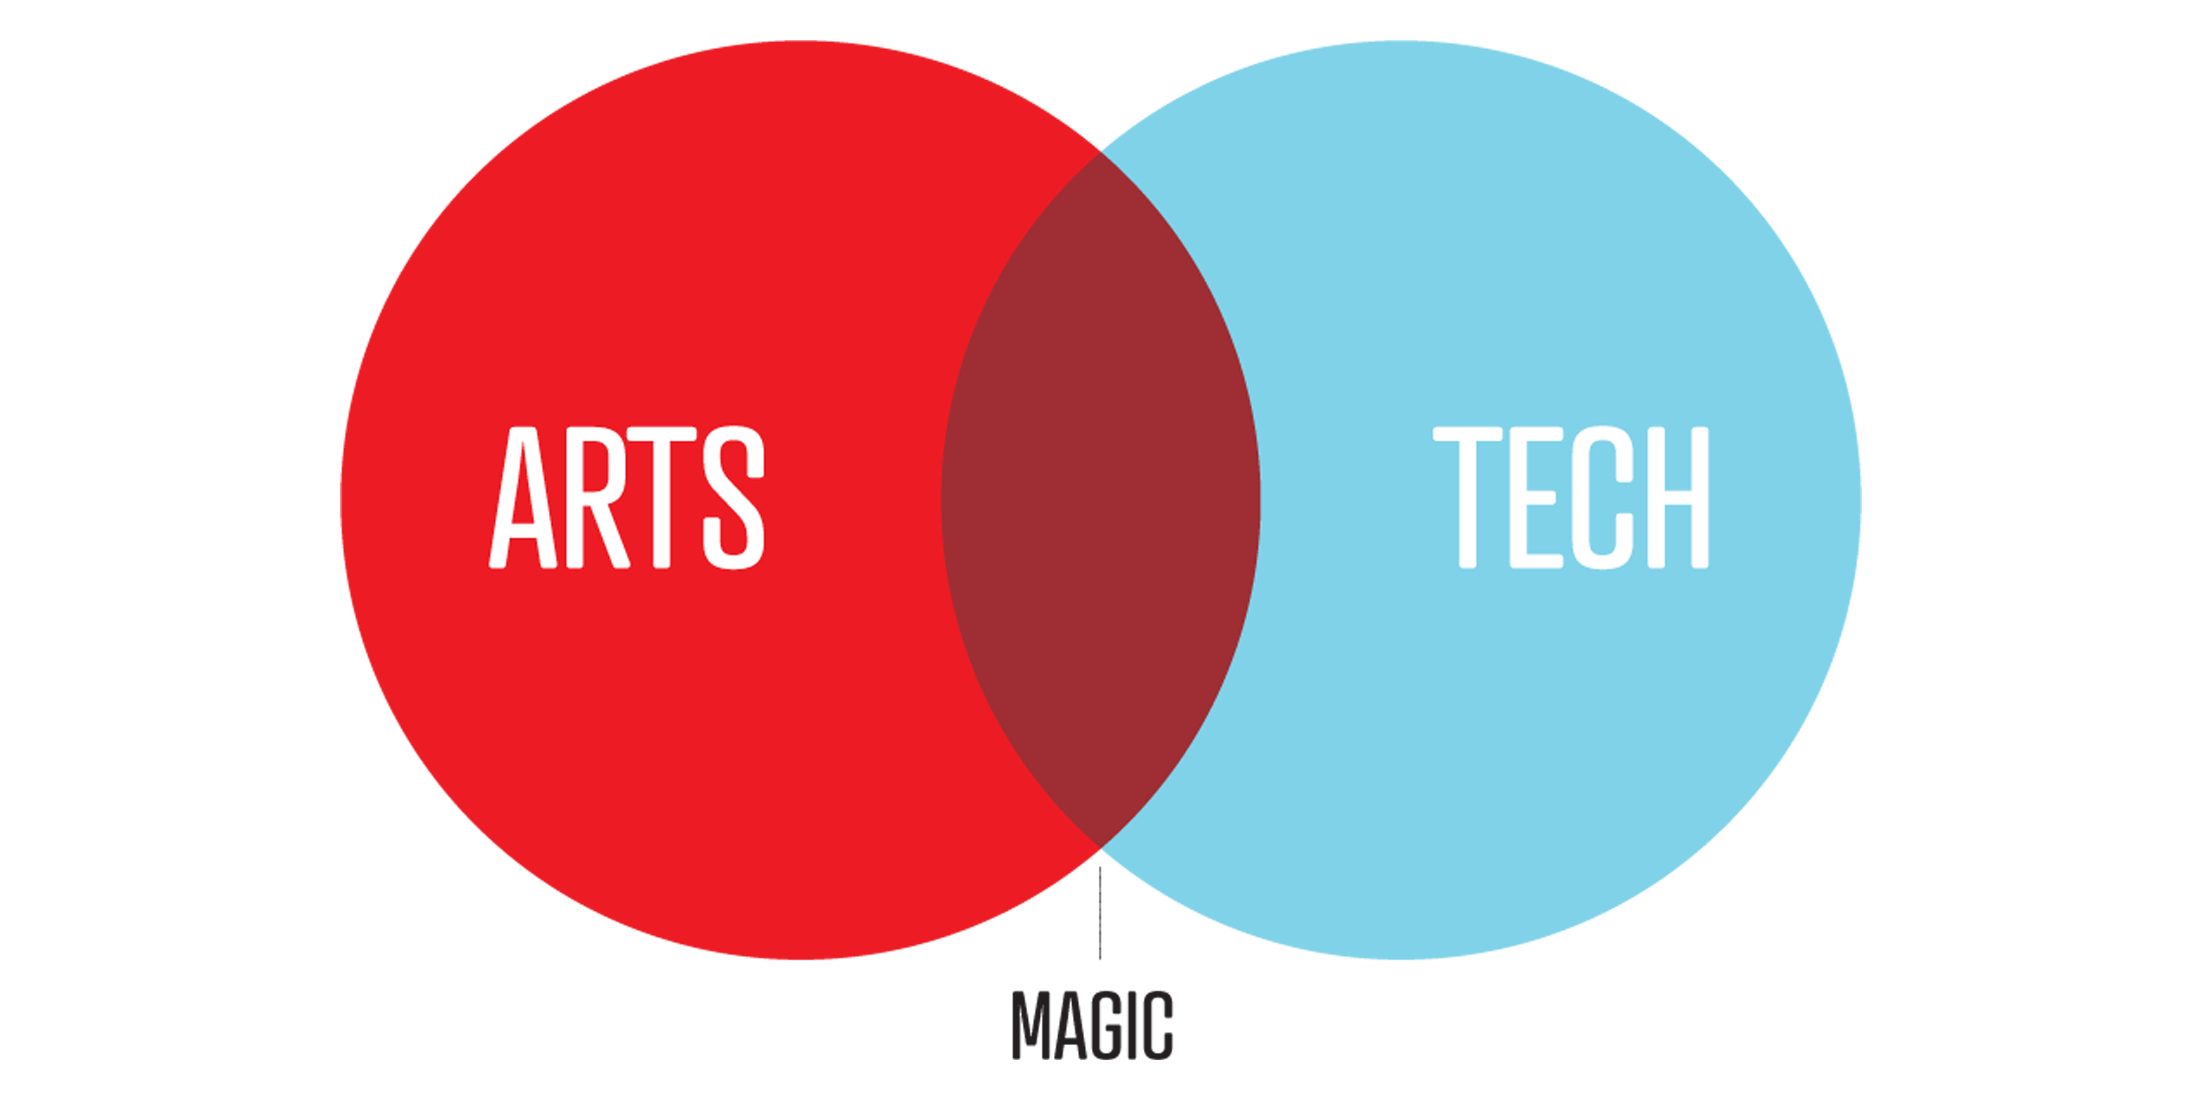 The arts and technology coming together in venn diagram, as they make magic